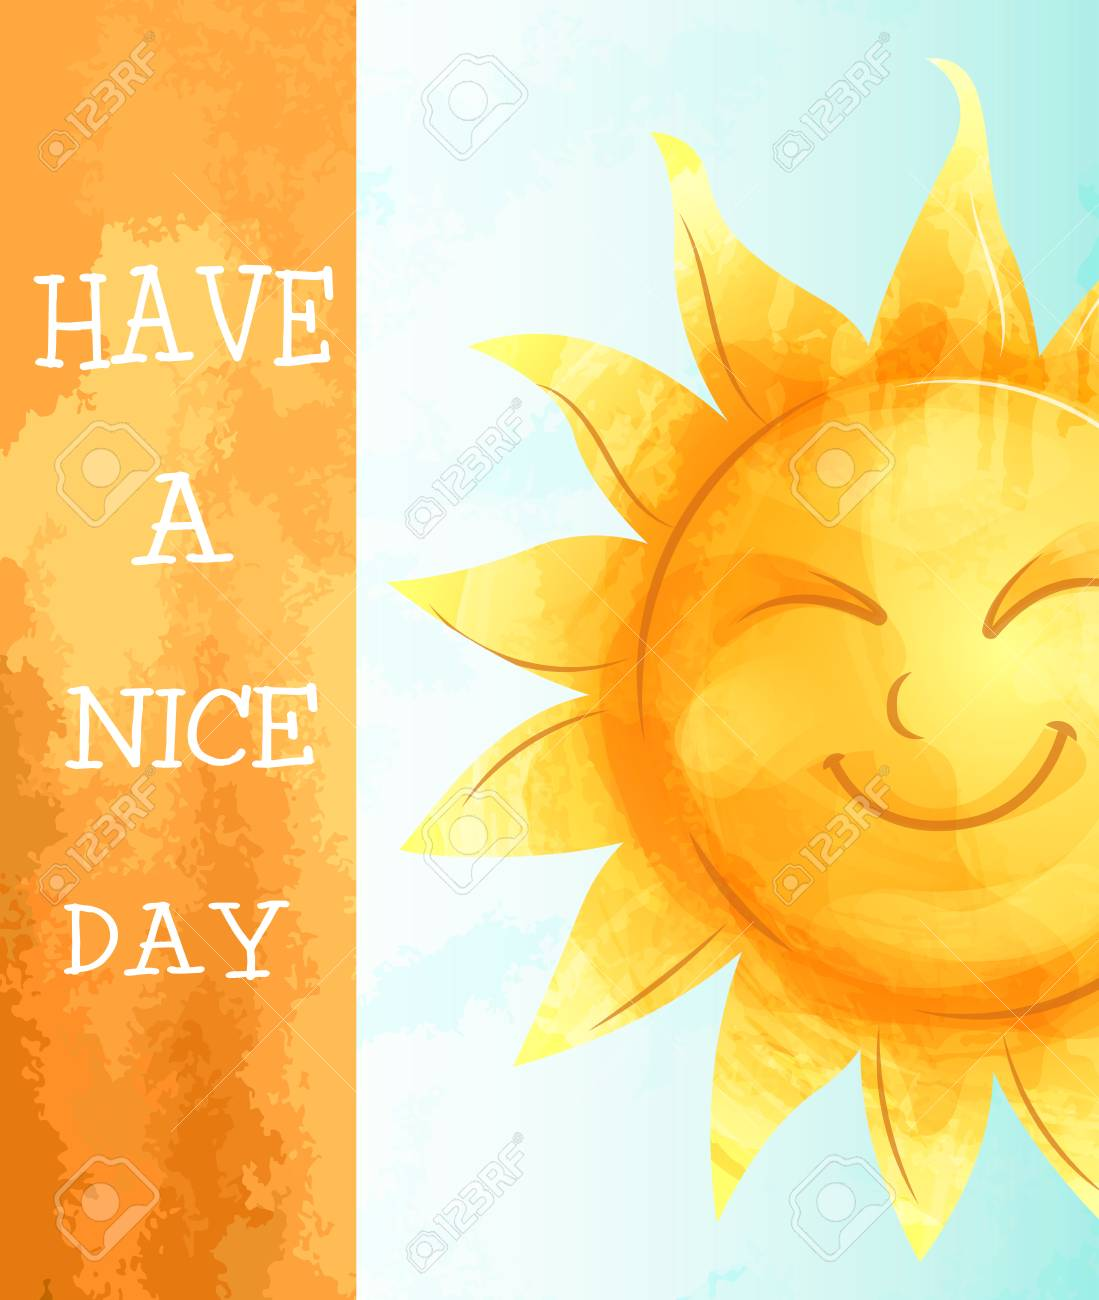 Vector image. Greeting card with a cartoon character sun. Imitation of watercolor. Have a nice day. - 112148978